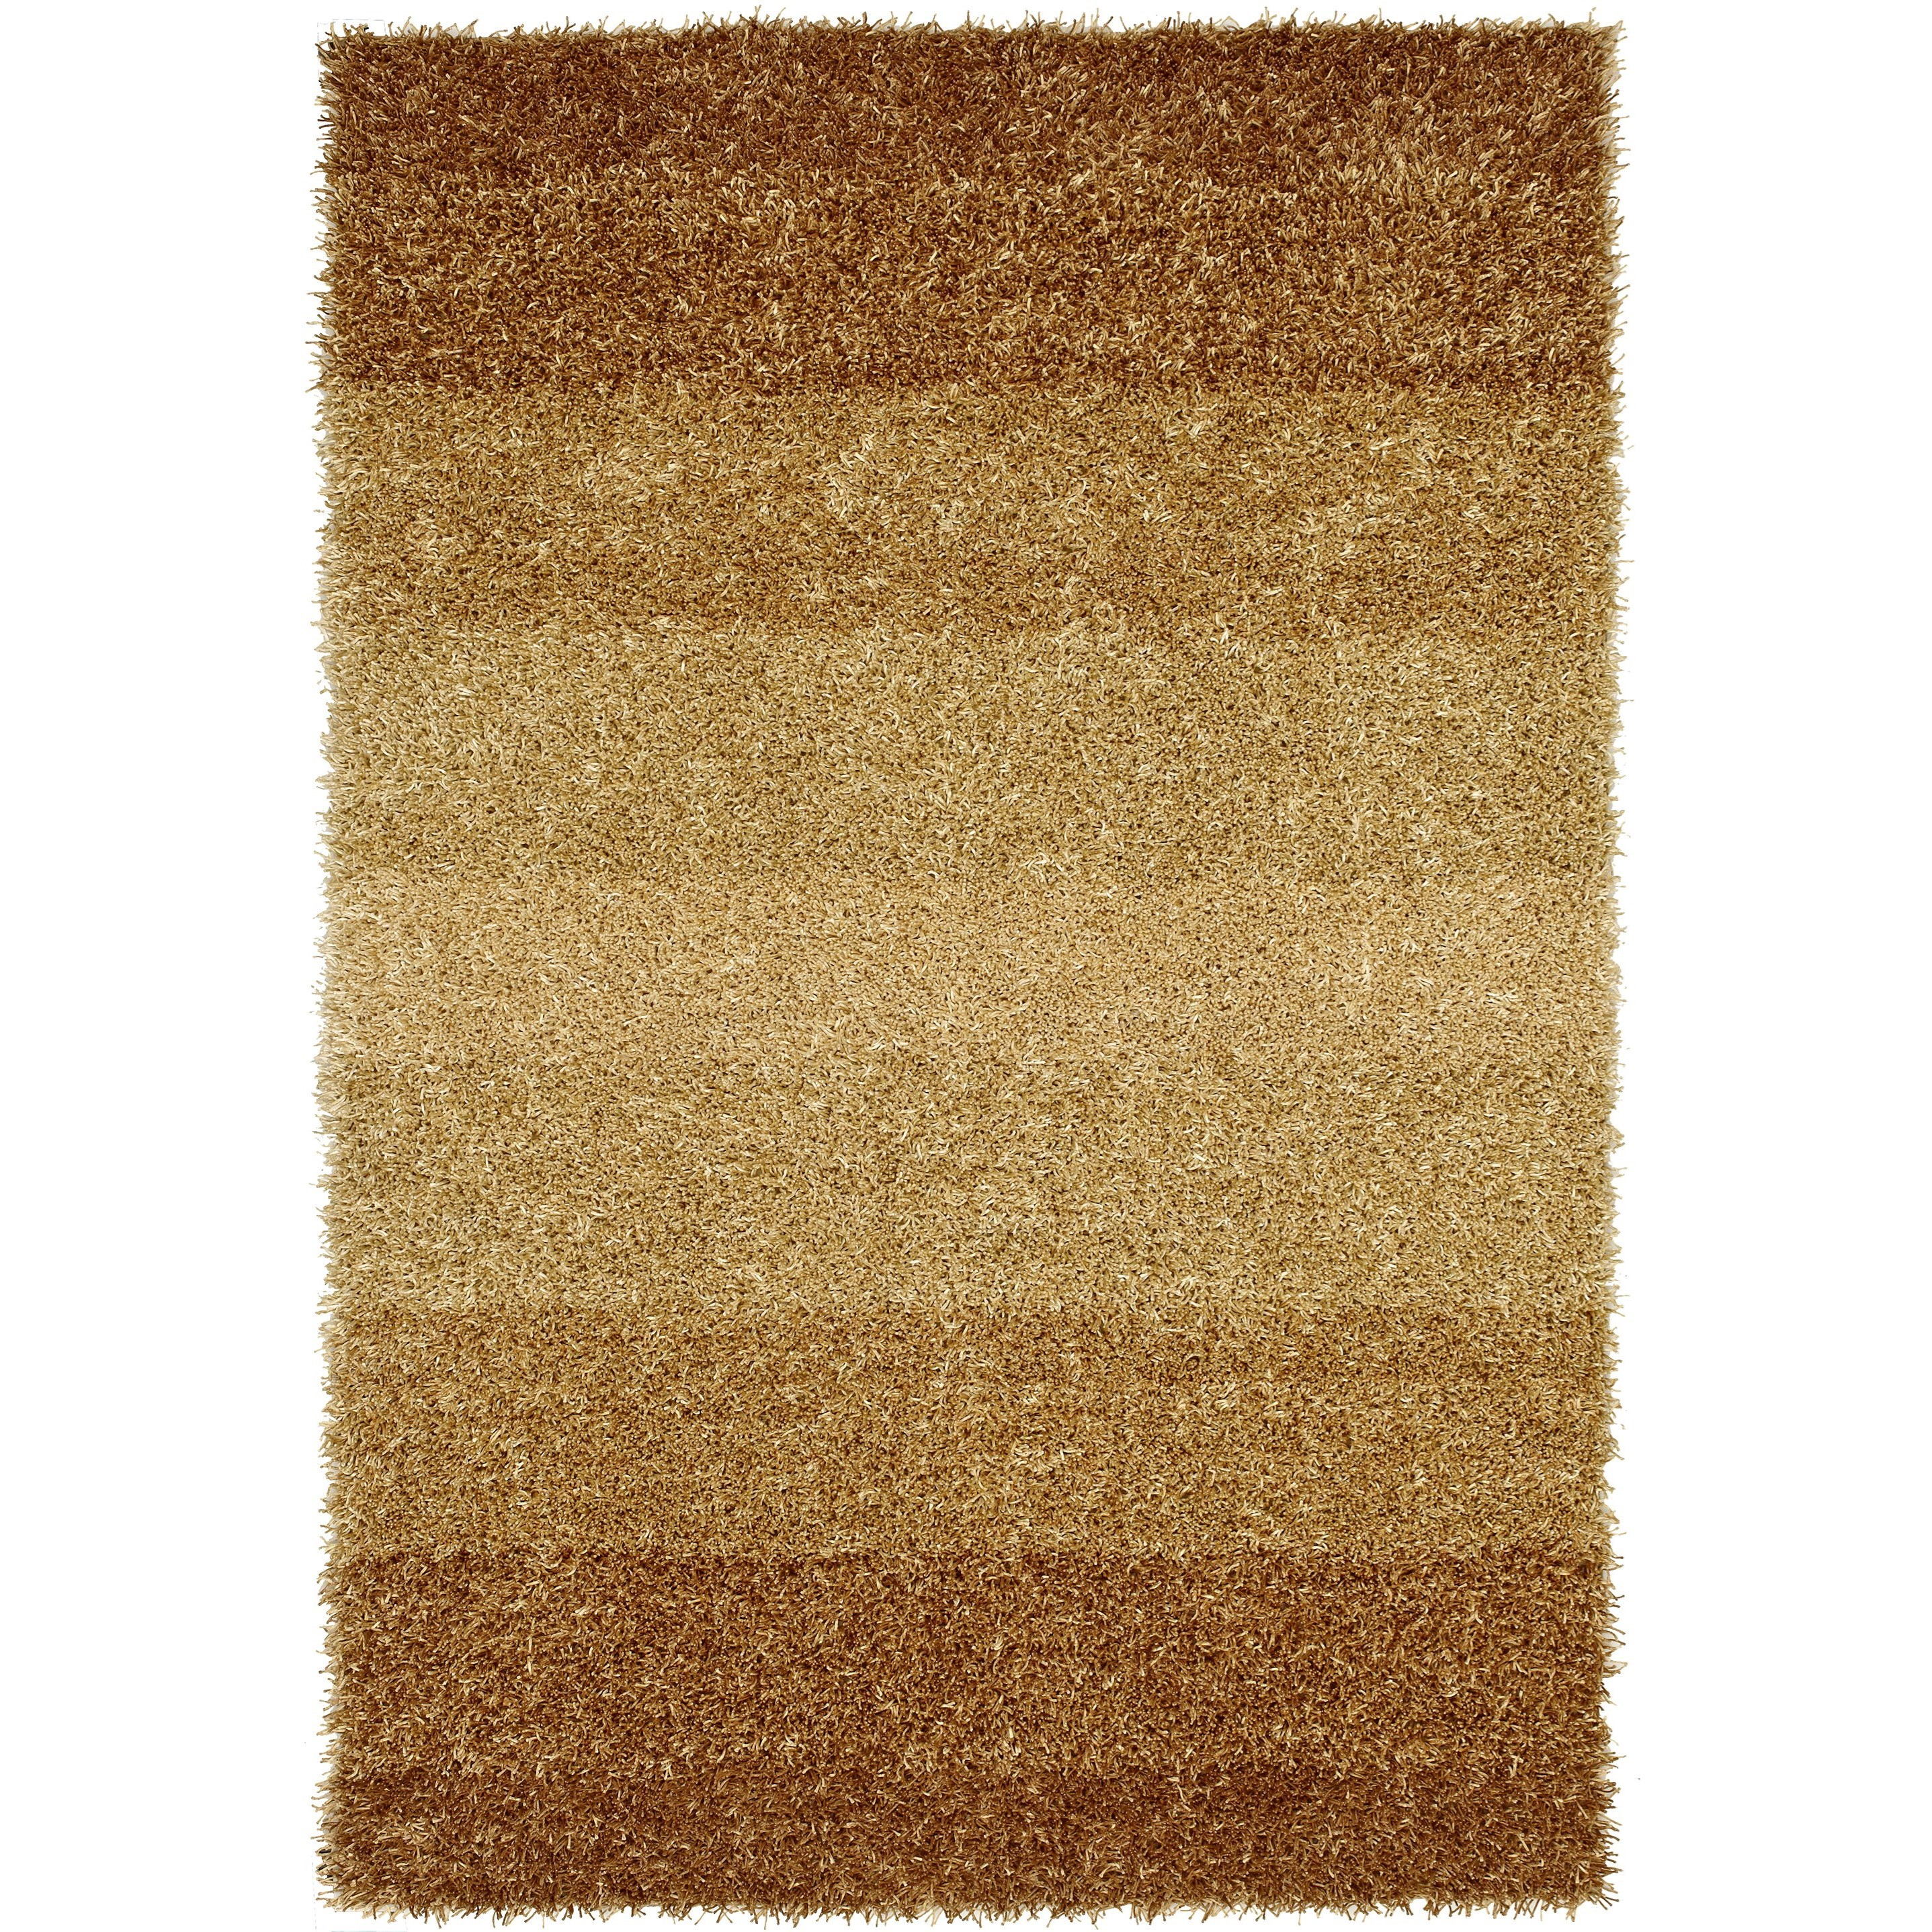 Spectrum Gold 8'X10' Rug by Dalyn at Sadler's Home Furnishings